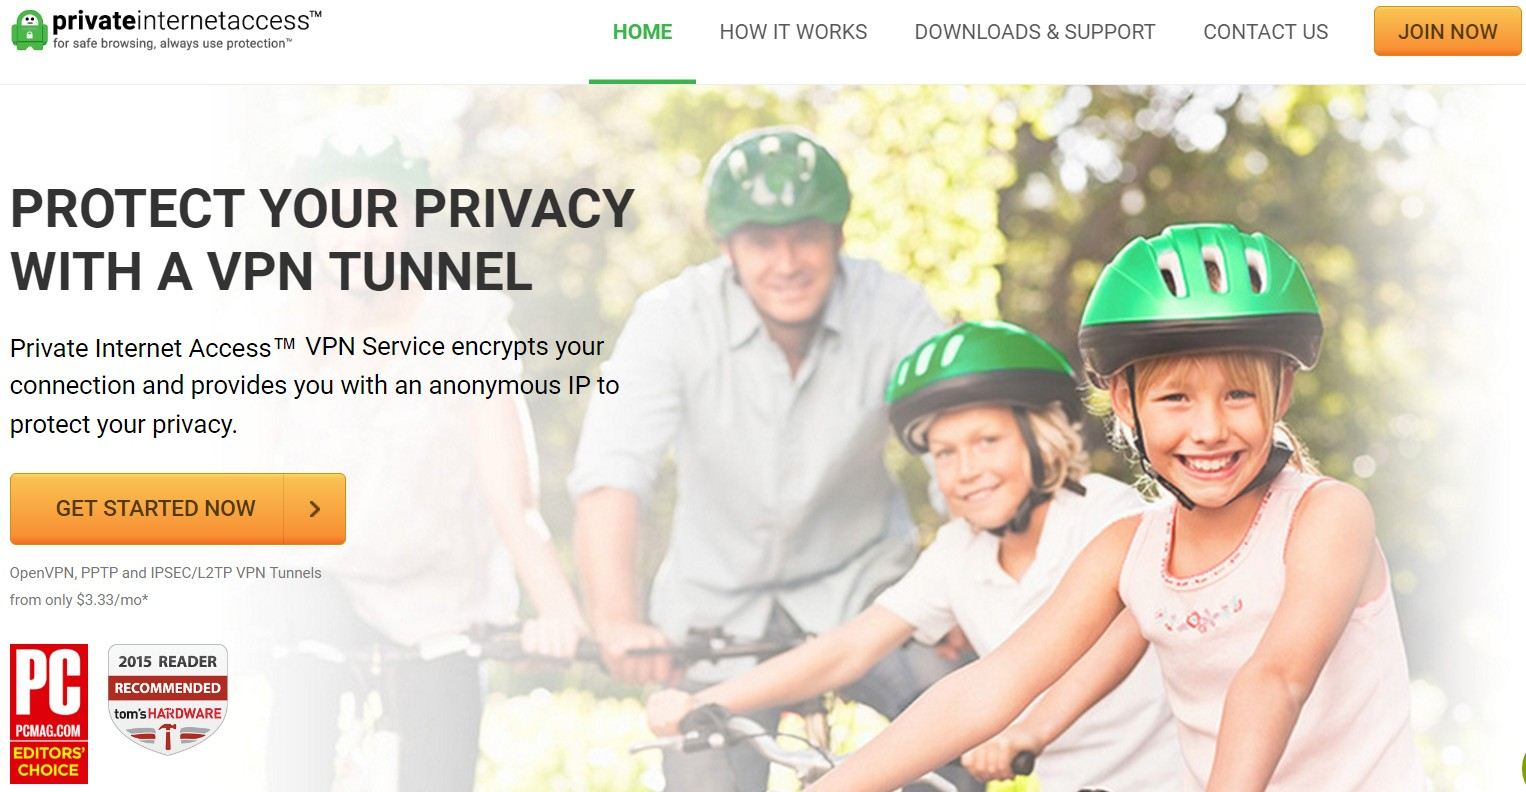 Private Internet Access - PIA - Home Page - Best Cheap And Affordable VPN Services